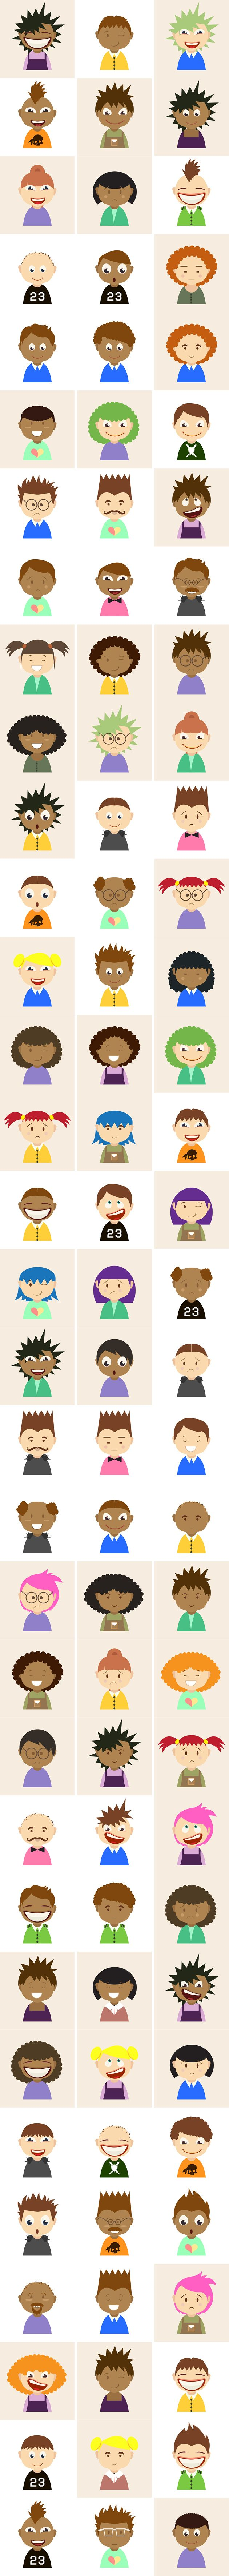 Find all these awesome vector illustrations and much more here: https://www.inkydeals.com/deal/900-vector-characters-pack/